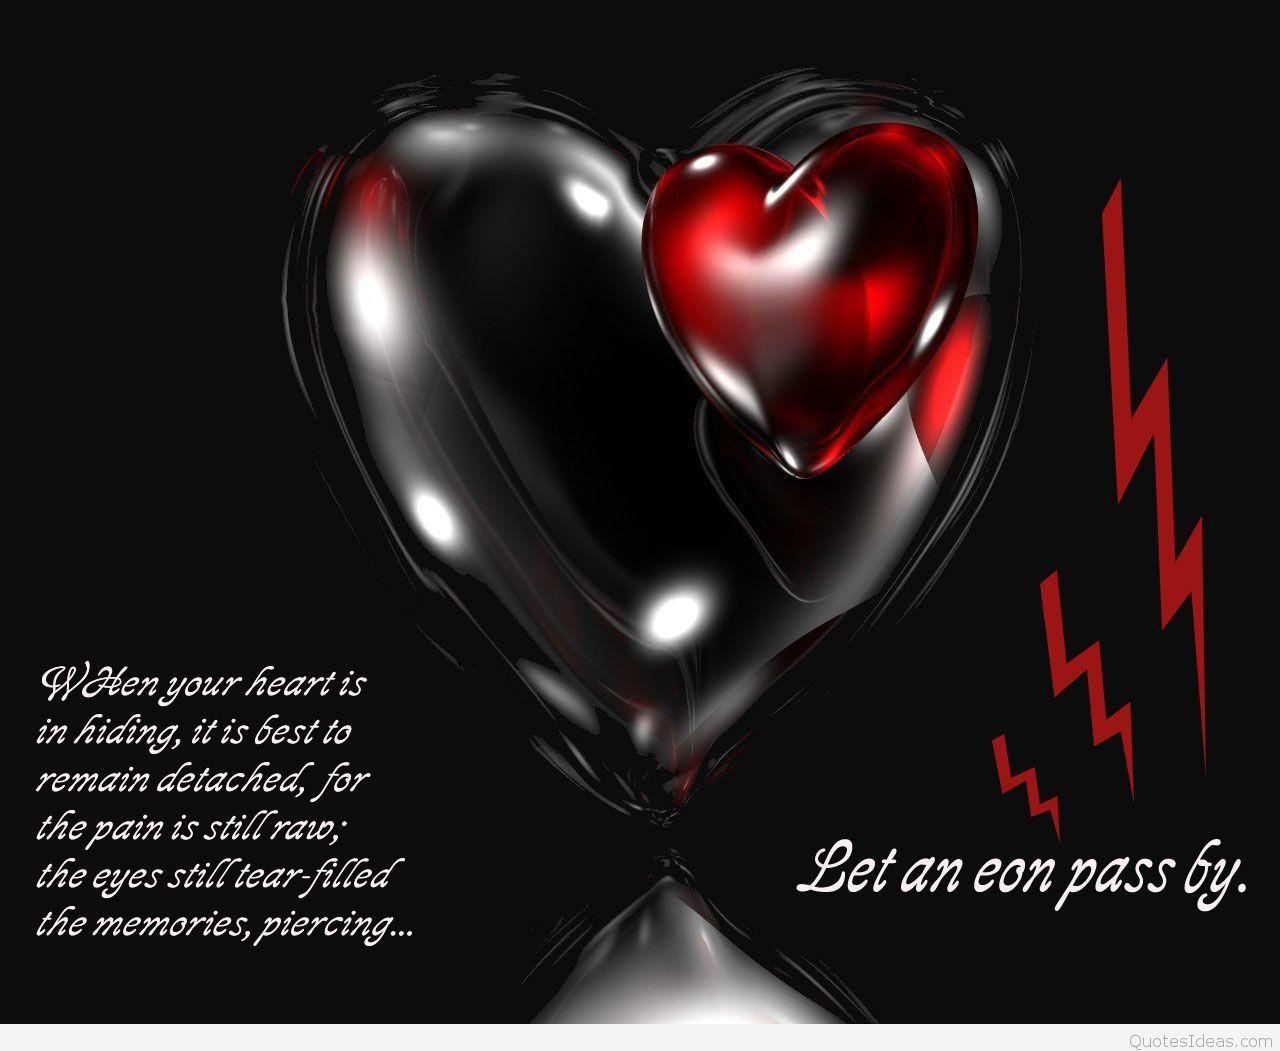 Broken Heart Sad Quotes With Wallpapers Images Hd 2016: Broken Heart Wallpapers HD